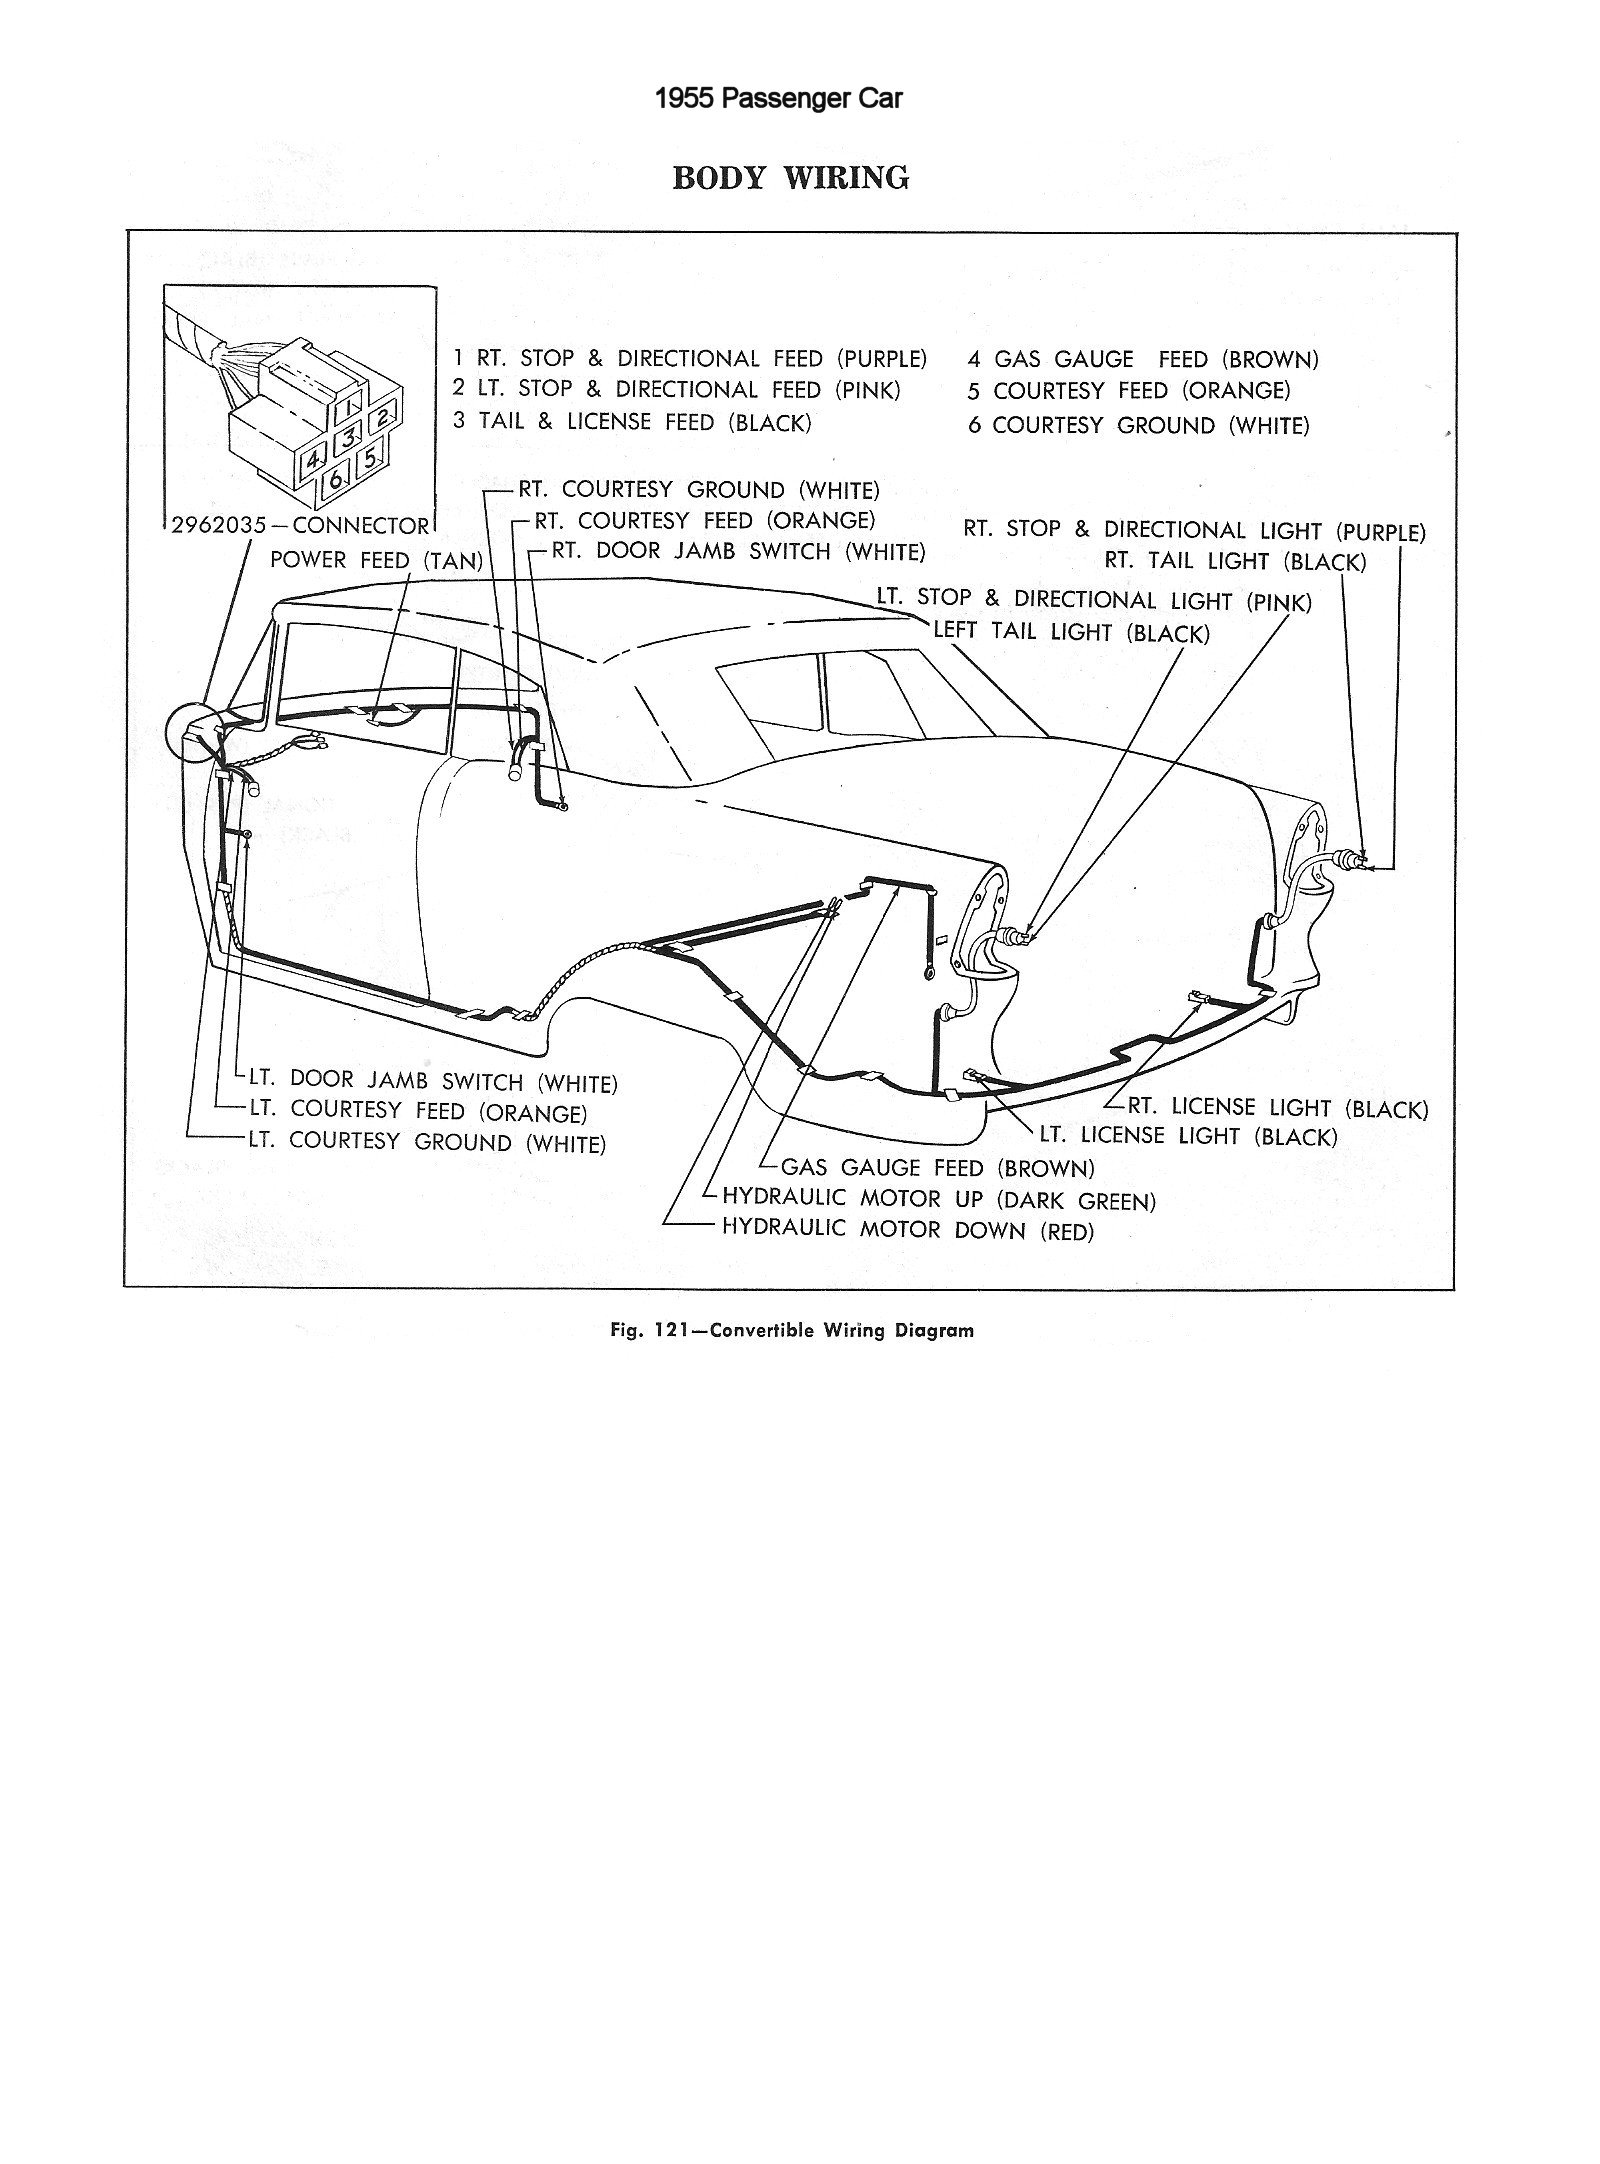 hight resolution of 1955 car body wiring 1955 passenger car body wiring